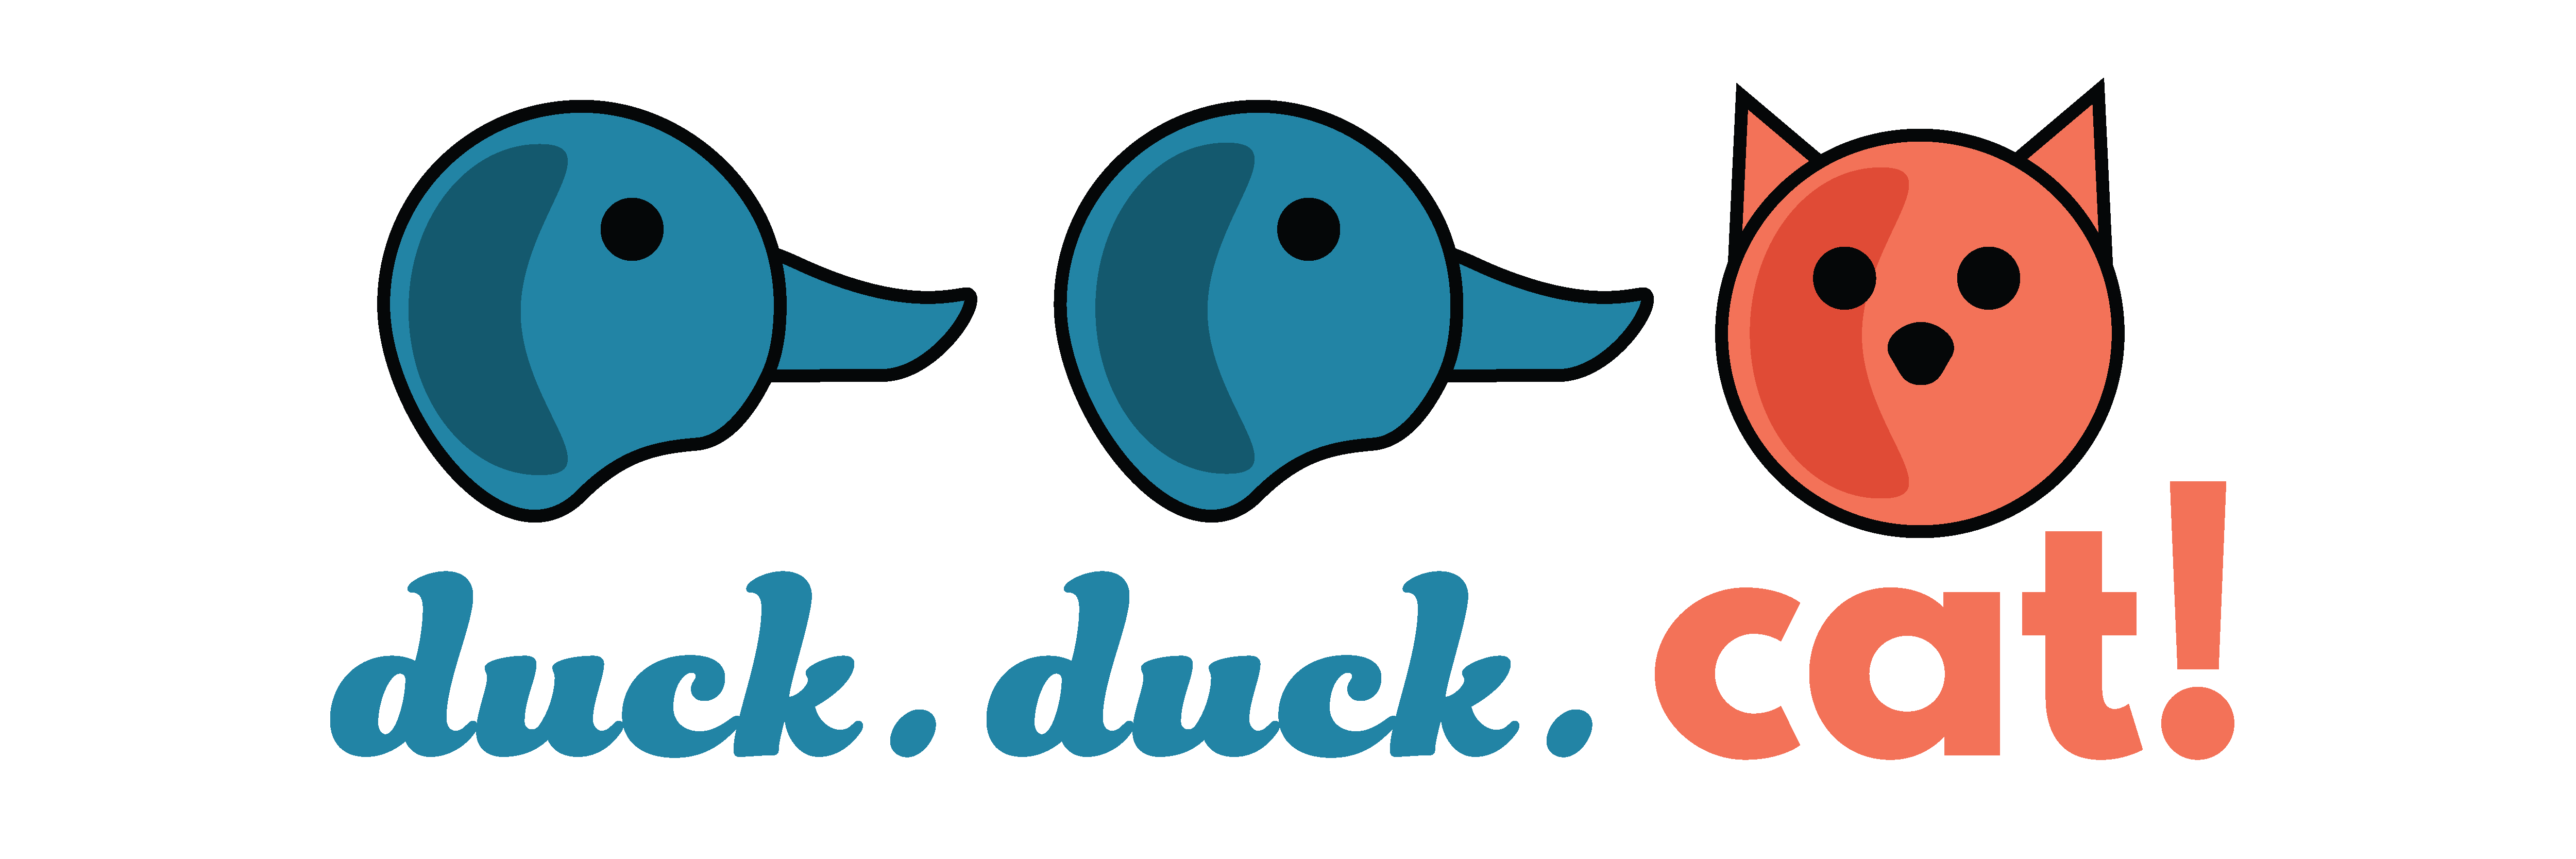 We Are Excited To Announce Our New Name: Duck, Duck, Cat!